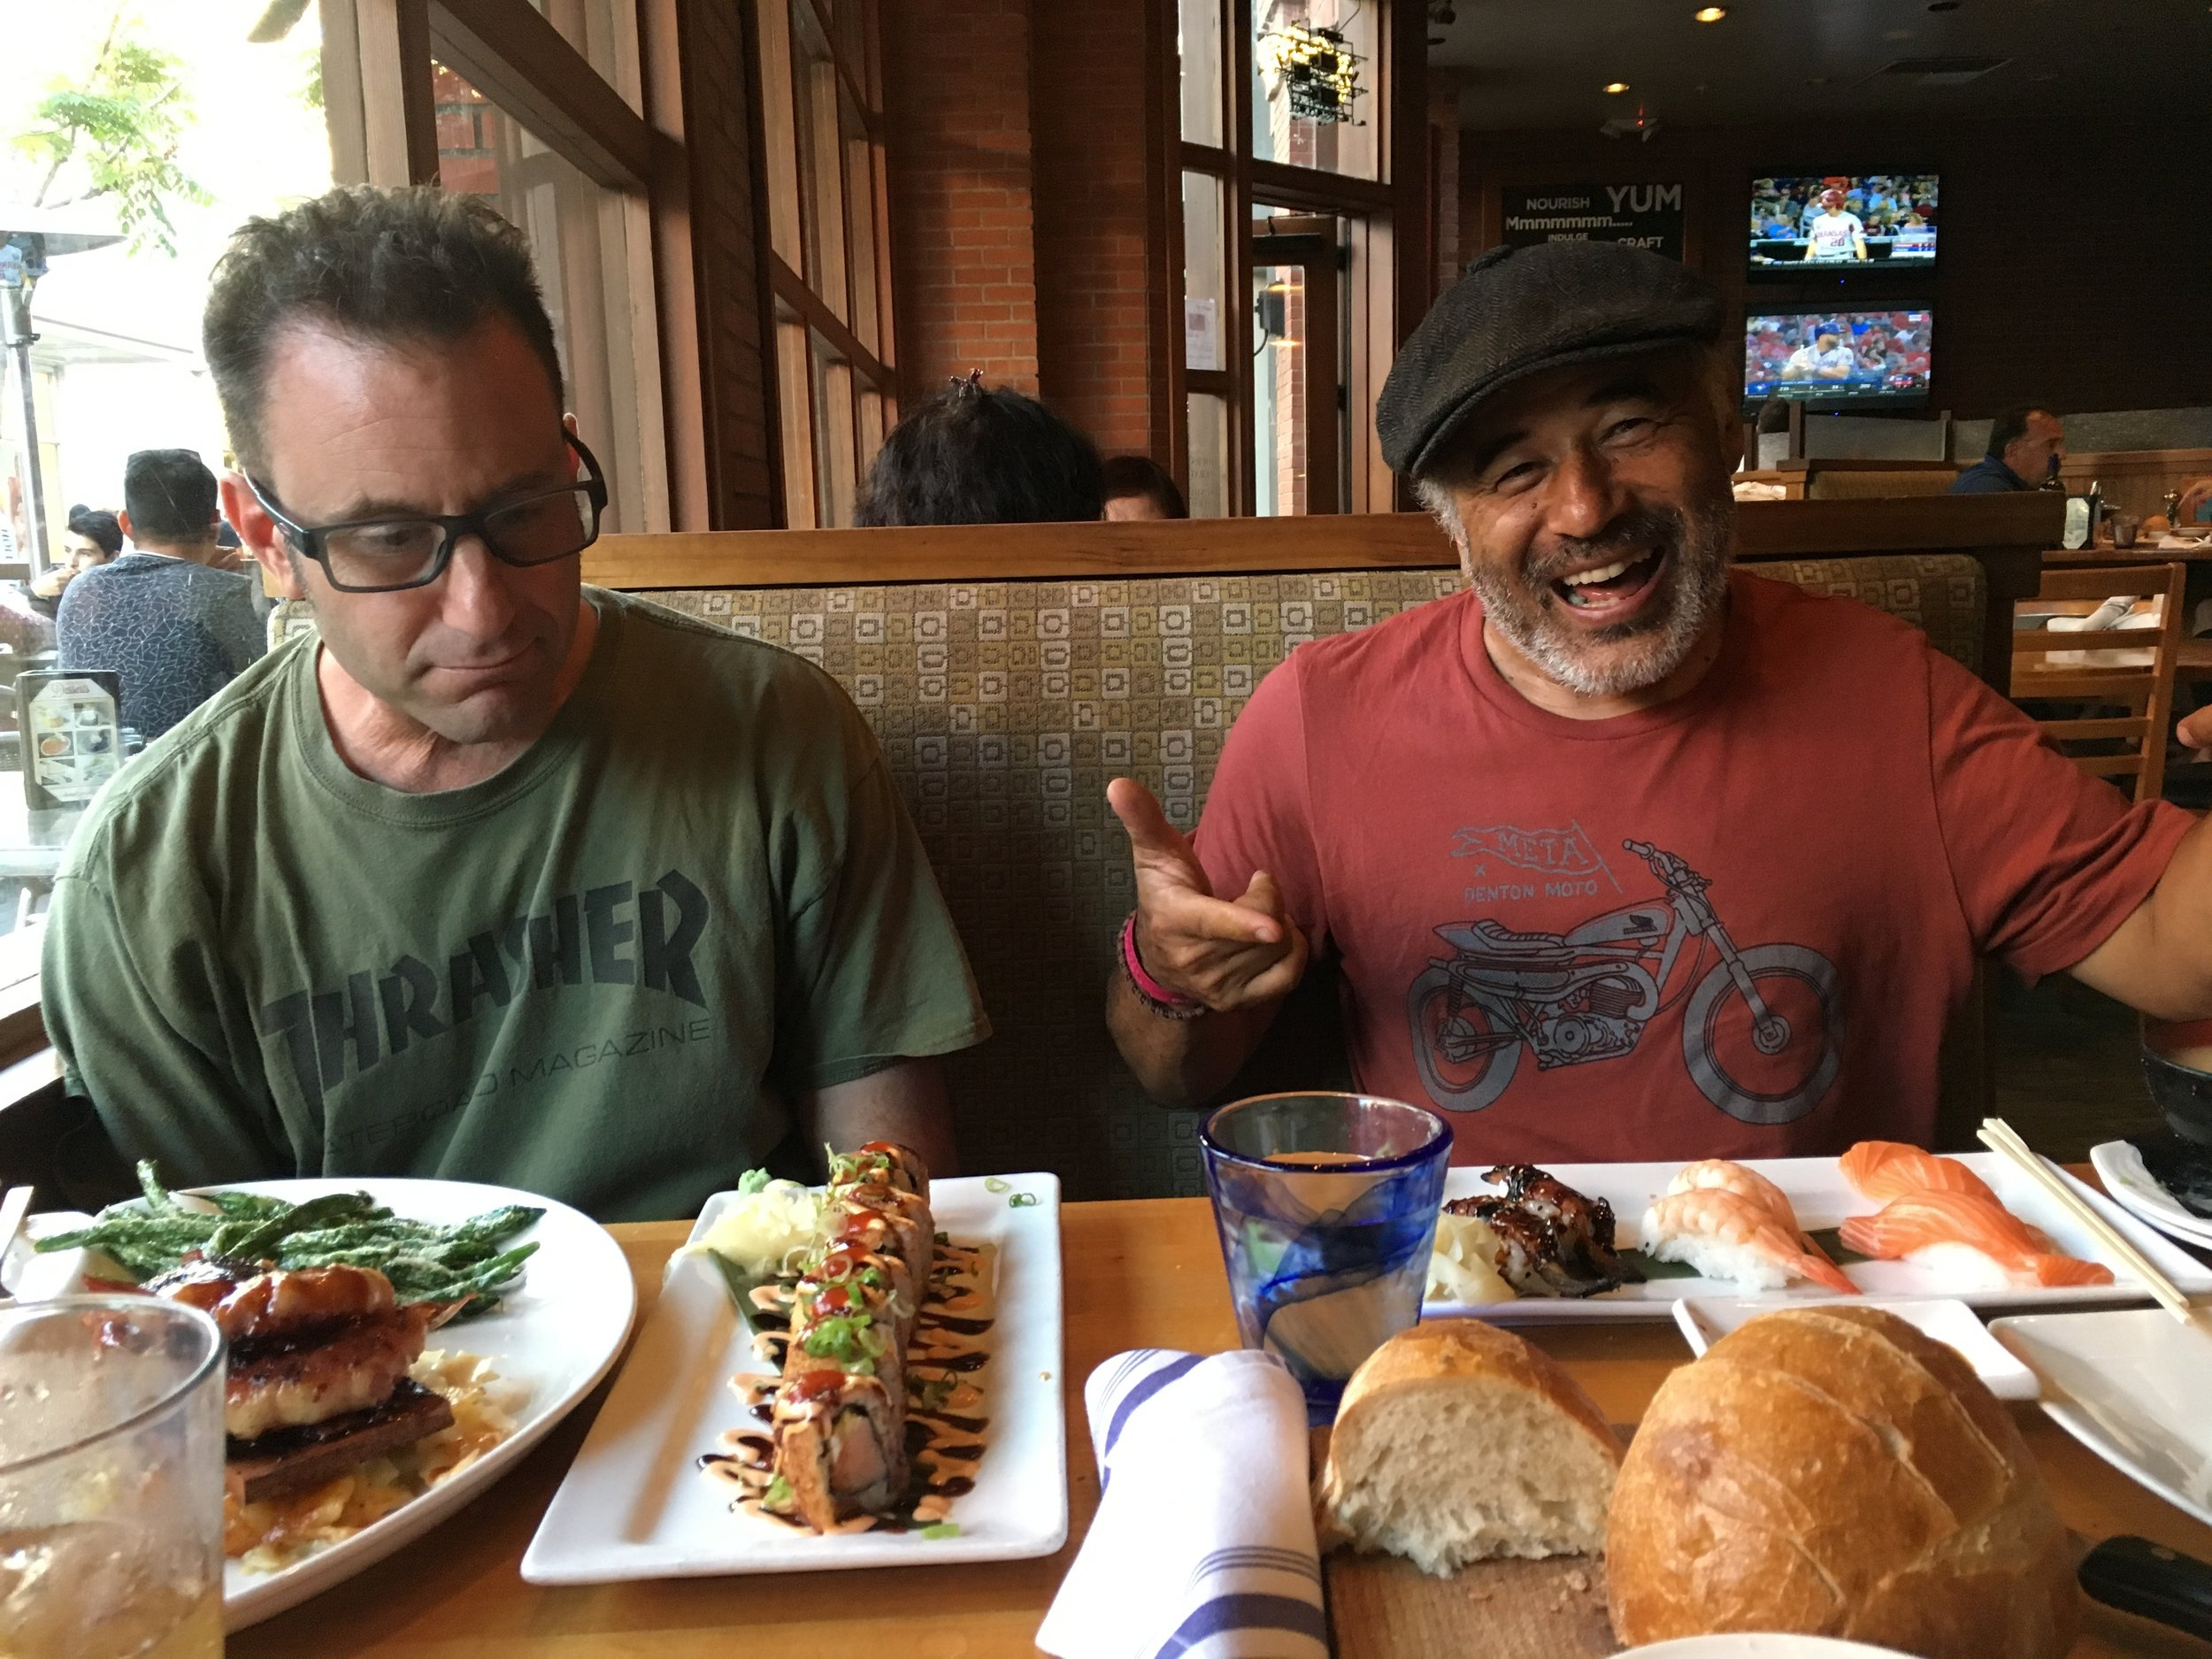 We went out for supper with Steve and his buddy Jason, who were settling up a weight-loss wager (Steve won the sushi dinner.)